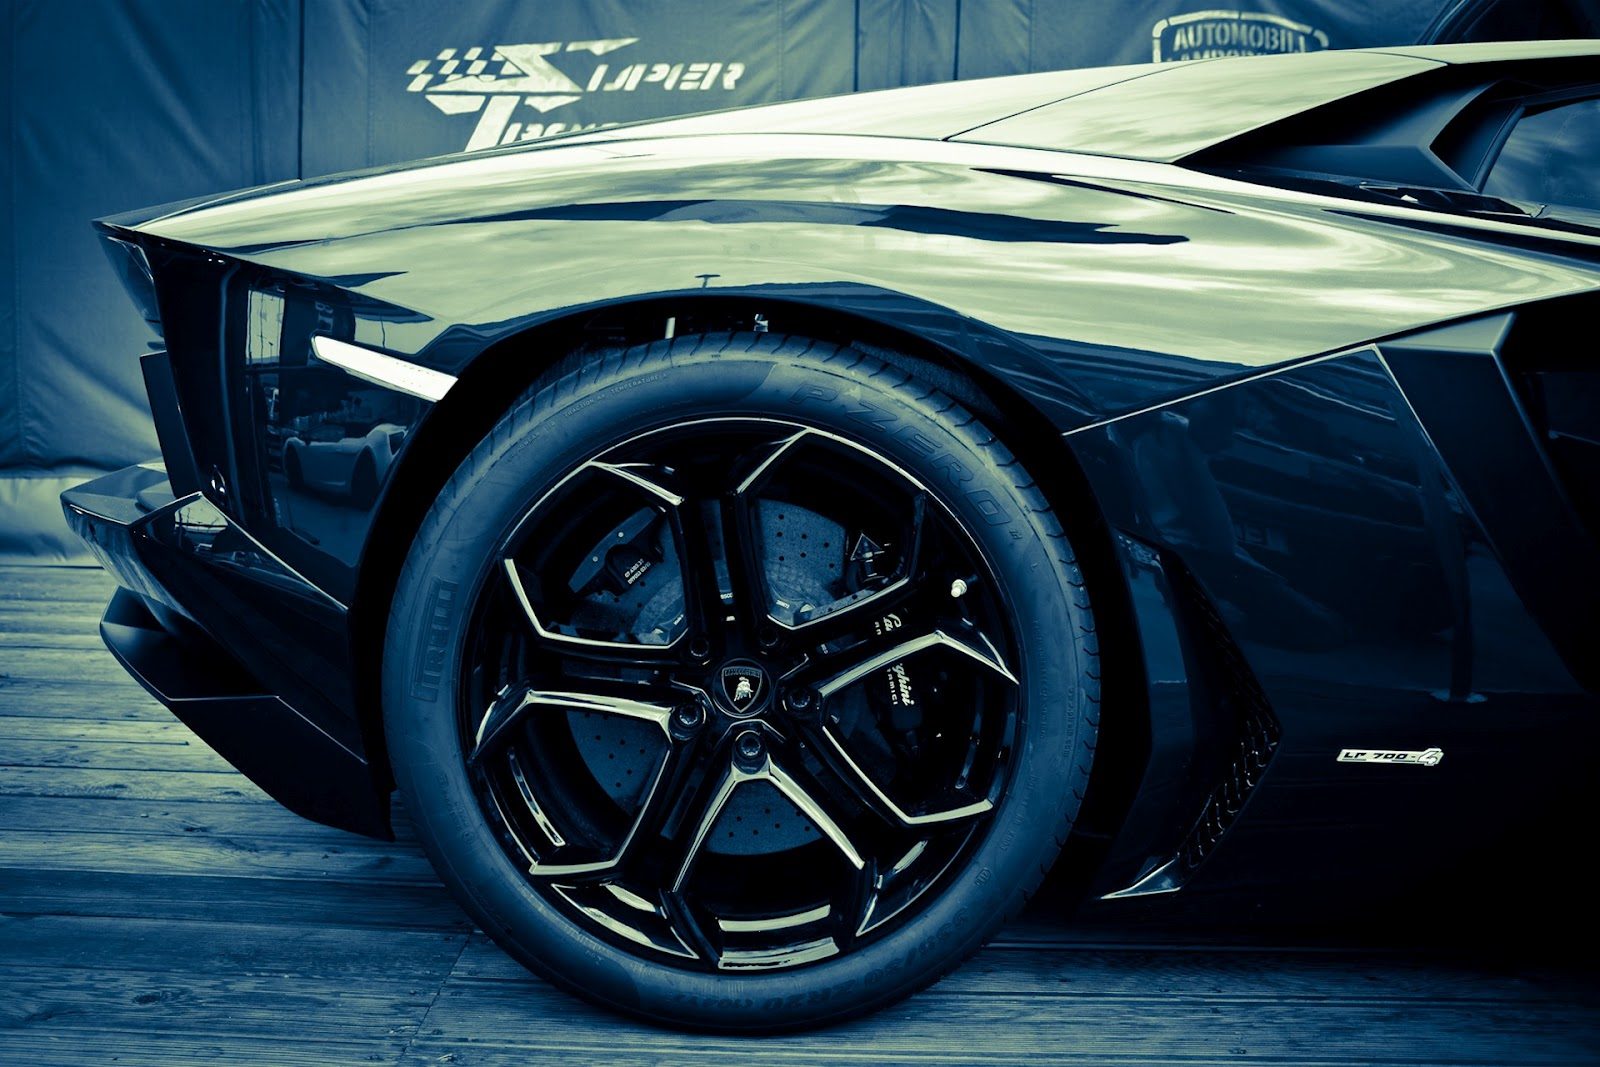 wallpaper wallpapers s px free download collections collection lamborghini hdq